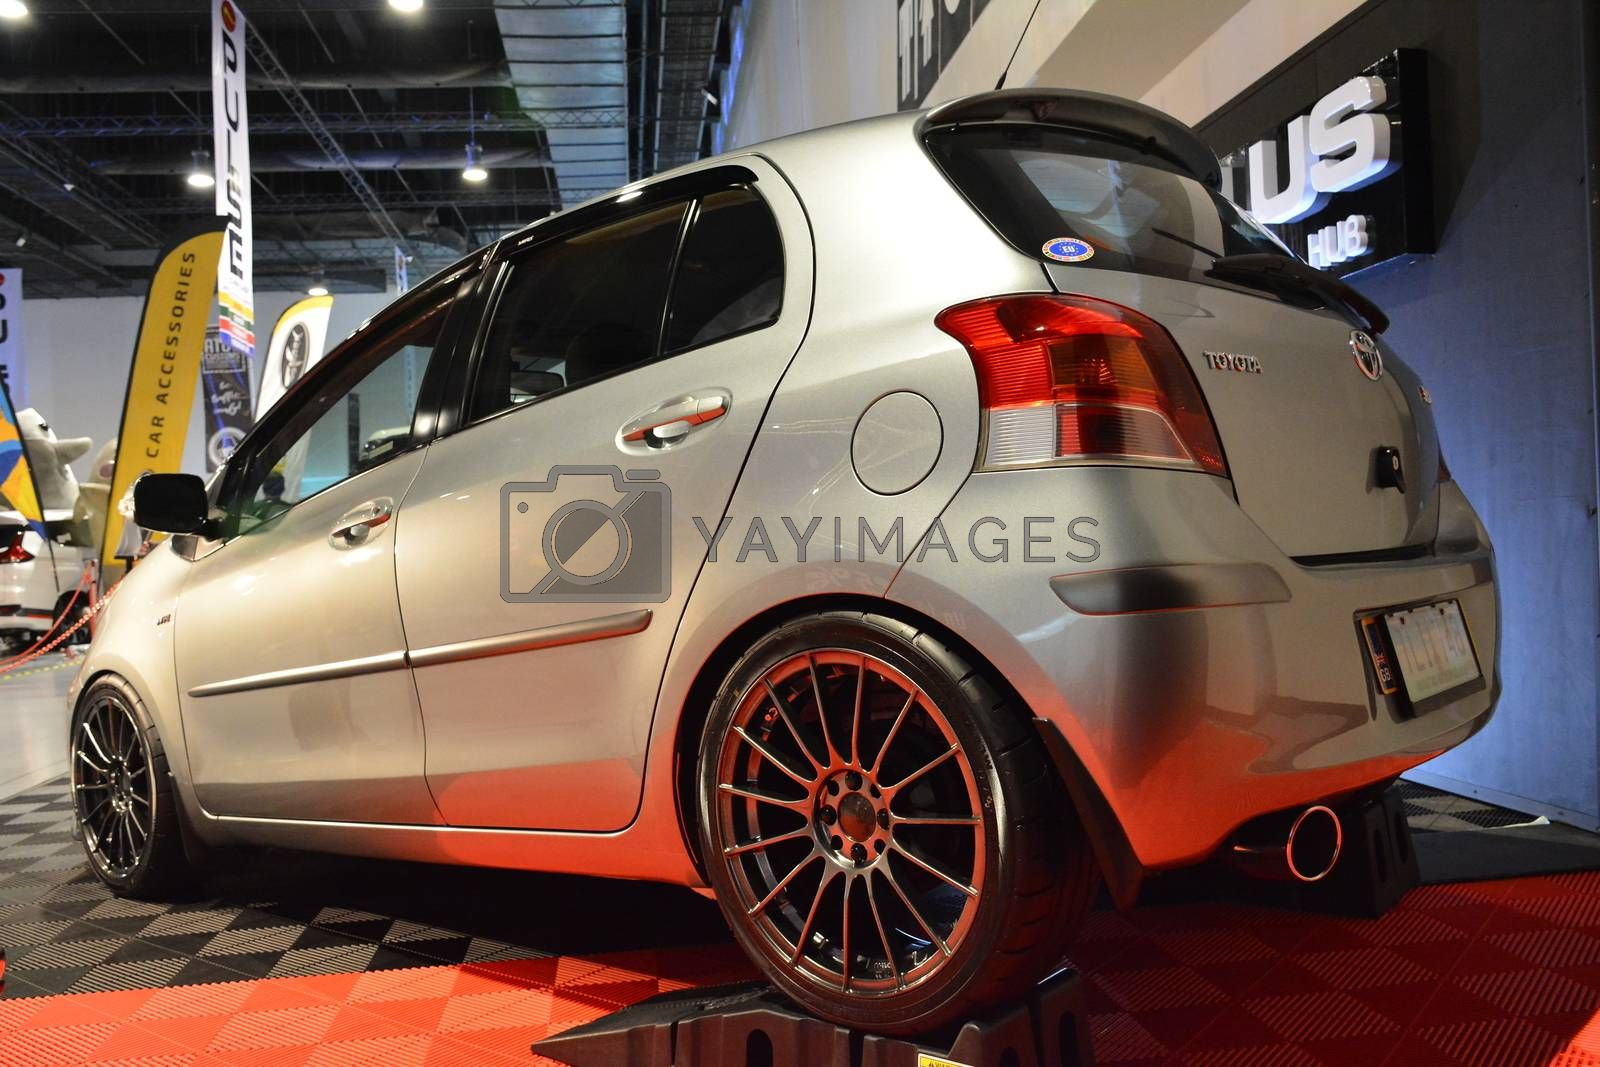 PASAY, PH - MAY 25 - Toyota yaris at 25th Trans Sport Show on May 25, 2019 in Pasay, Philippines.